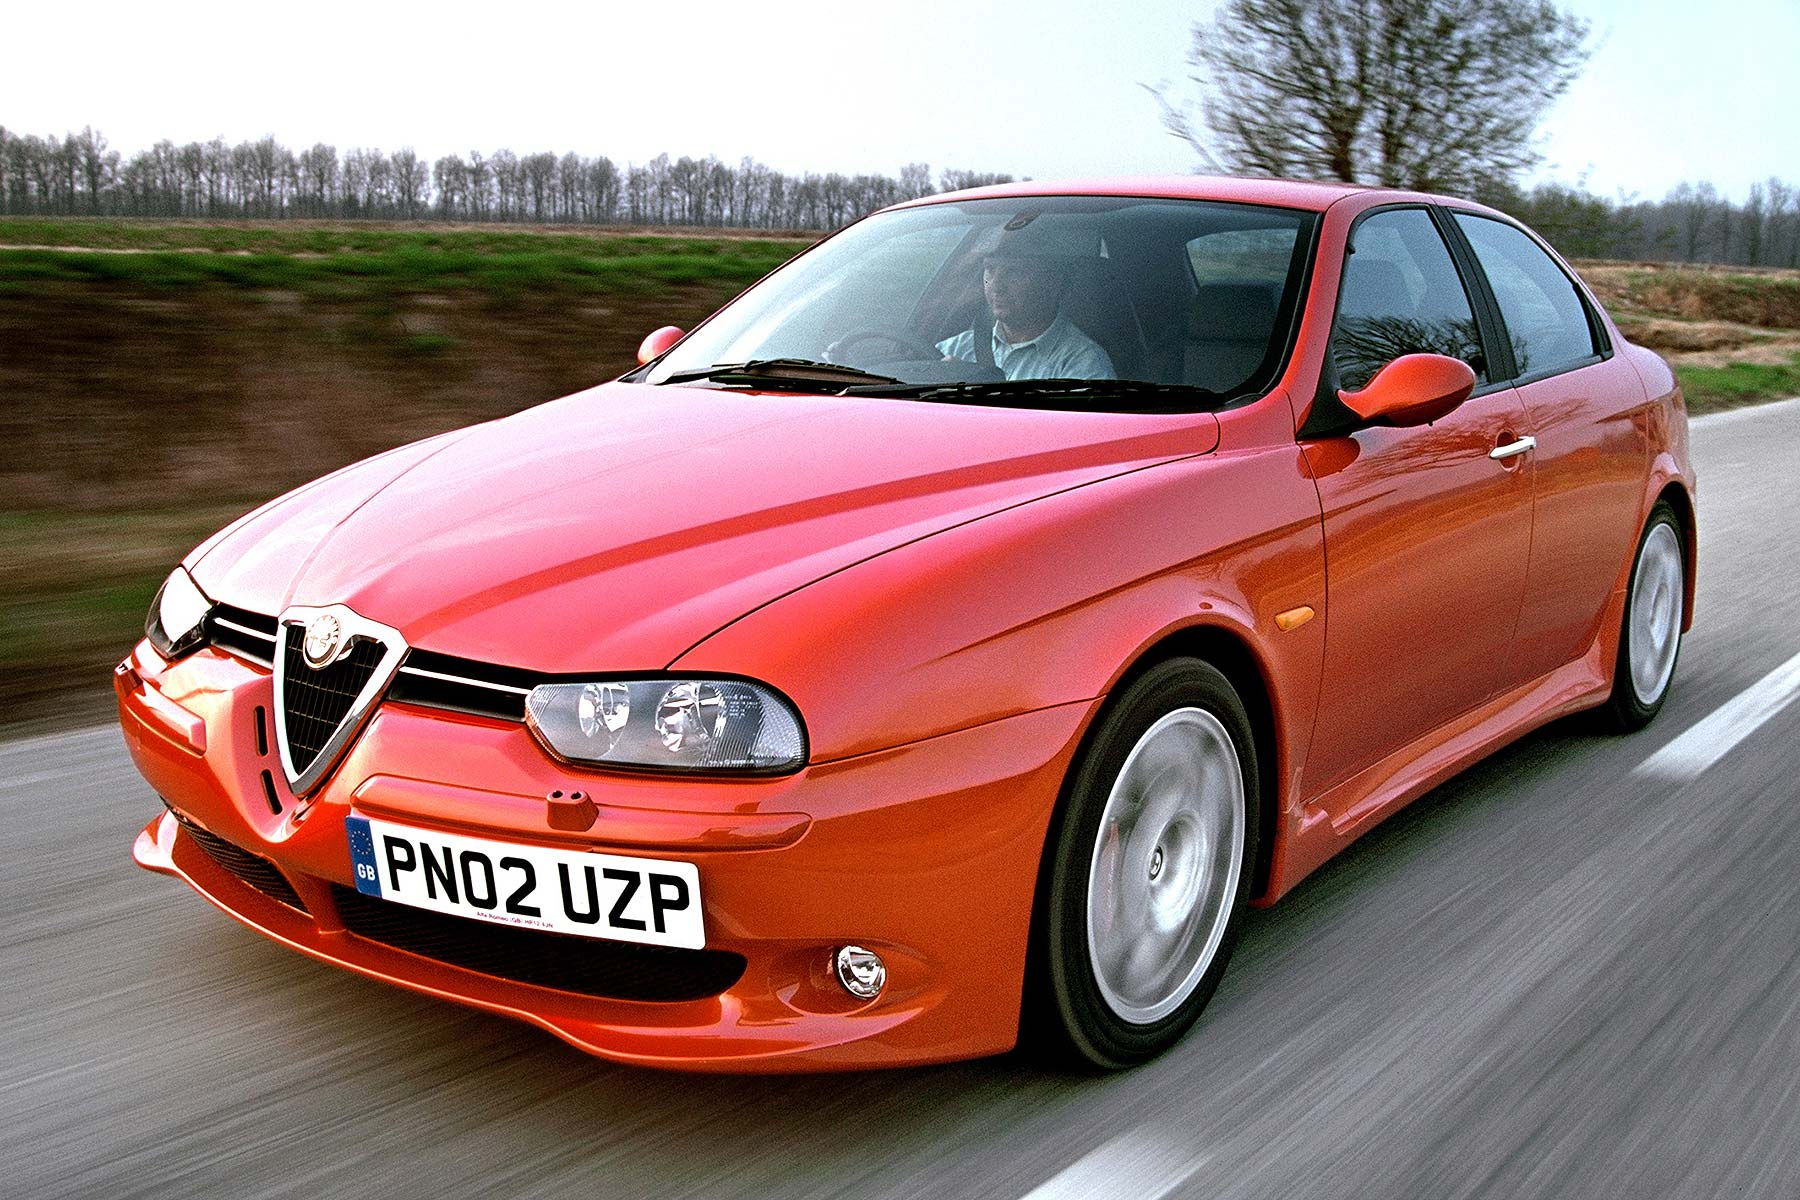 Alfa romeo owners manual 156 alfa romeo 156 fandeluxe Image collections